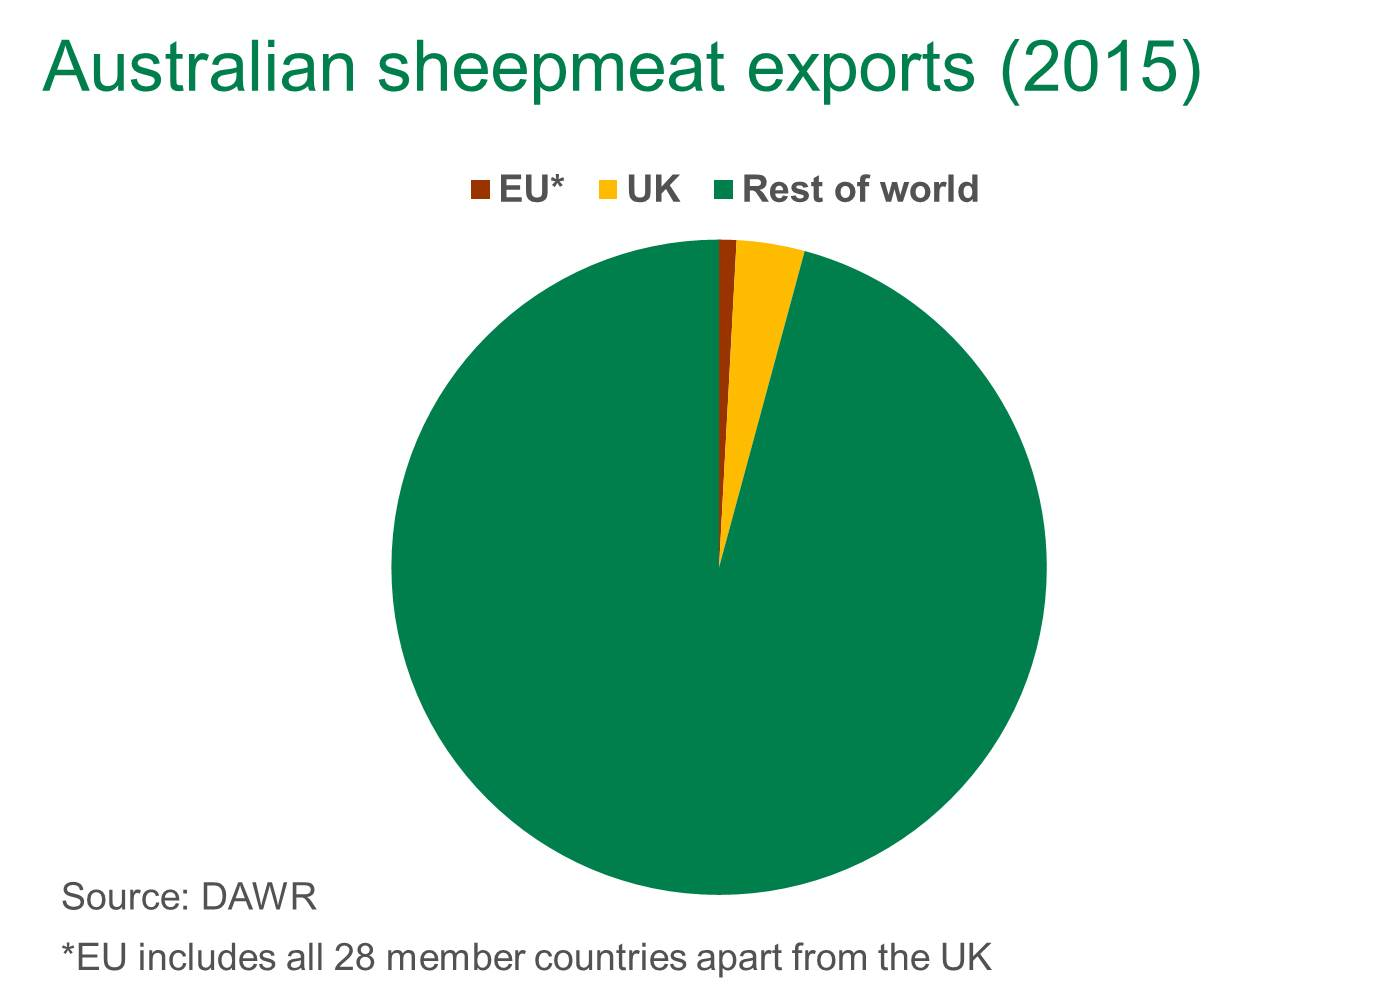 Sheepmeat-exports-to-EU-and-UK.jpg